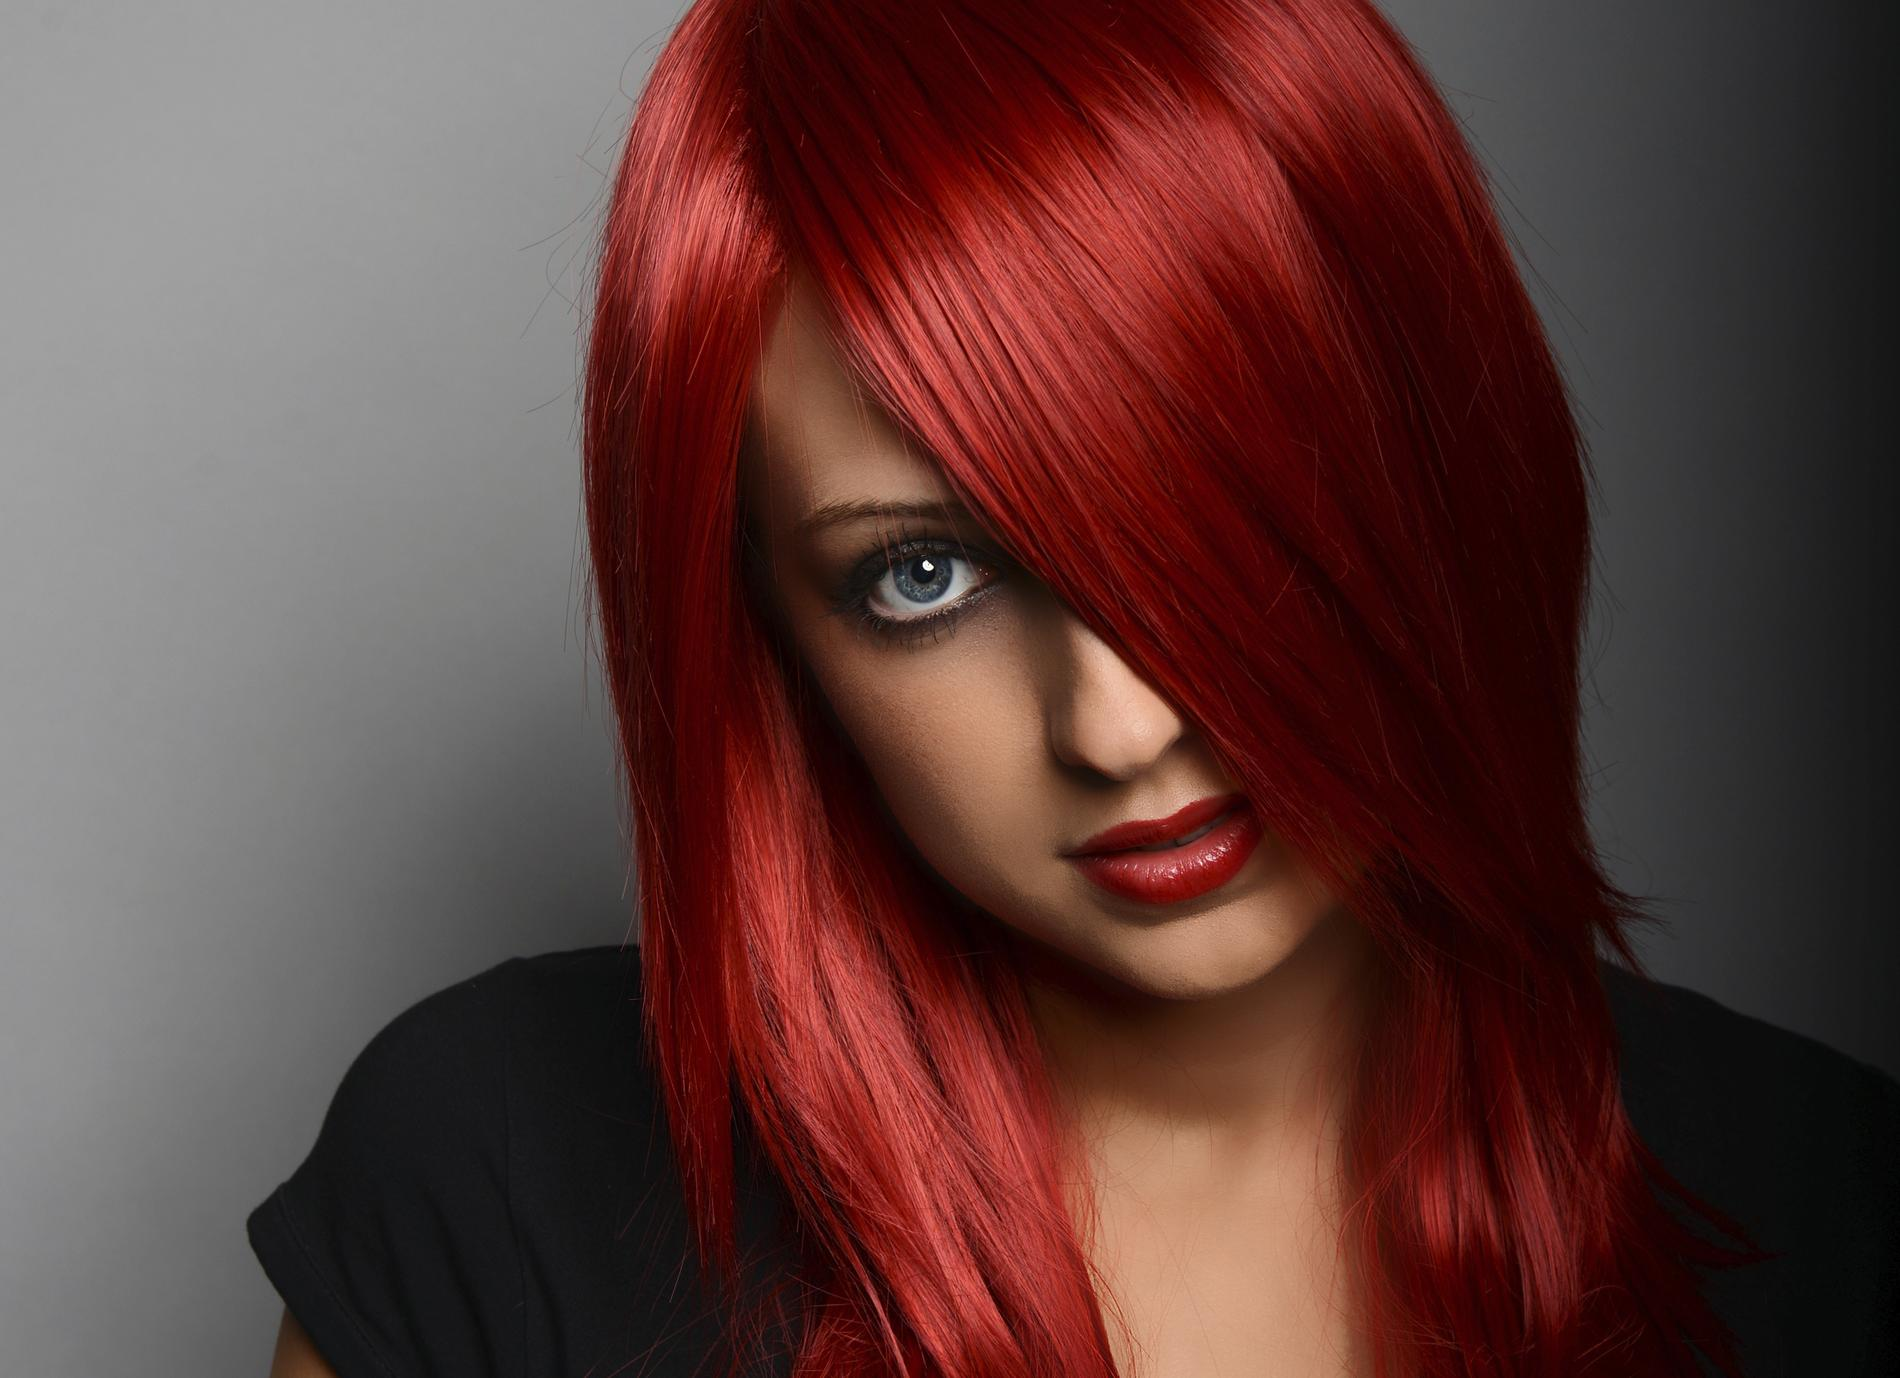 Quel maquillage adopter quand on a les cheveux rouges